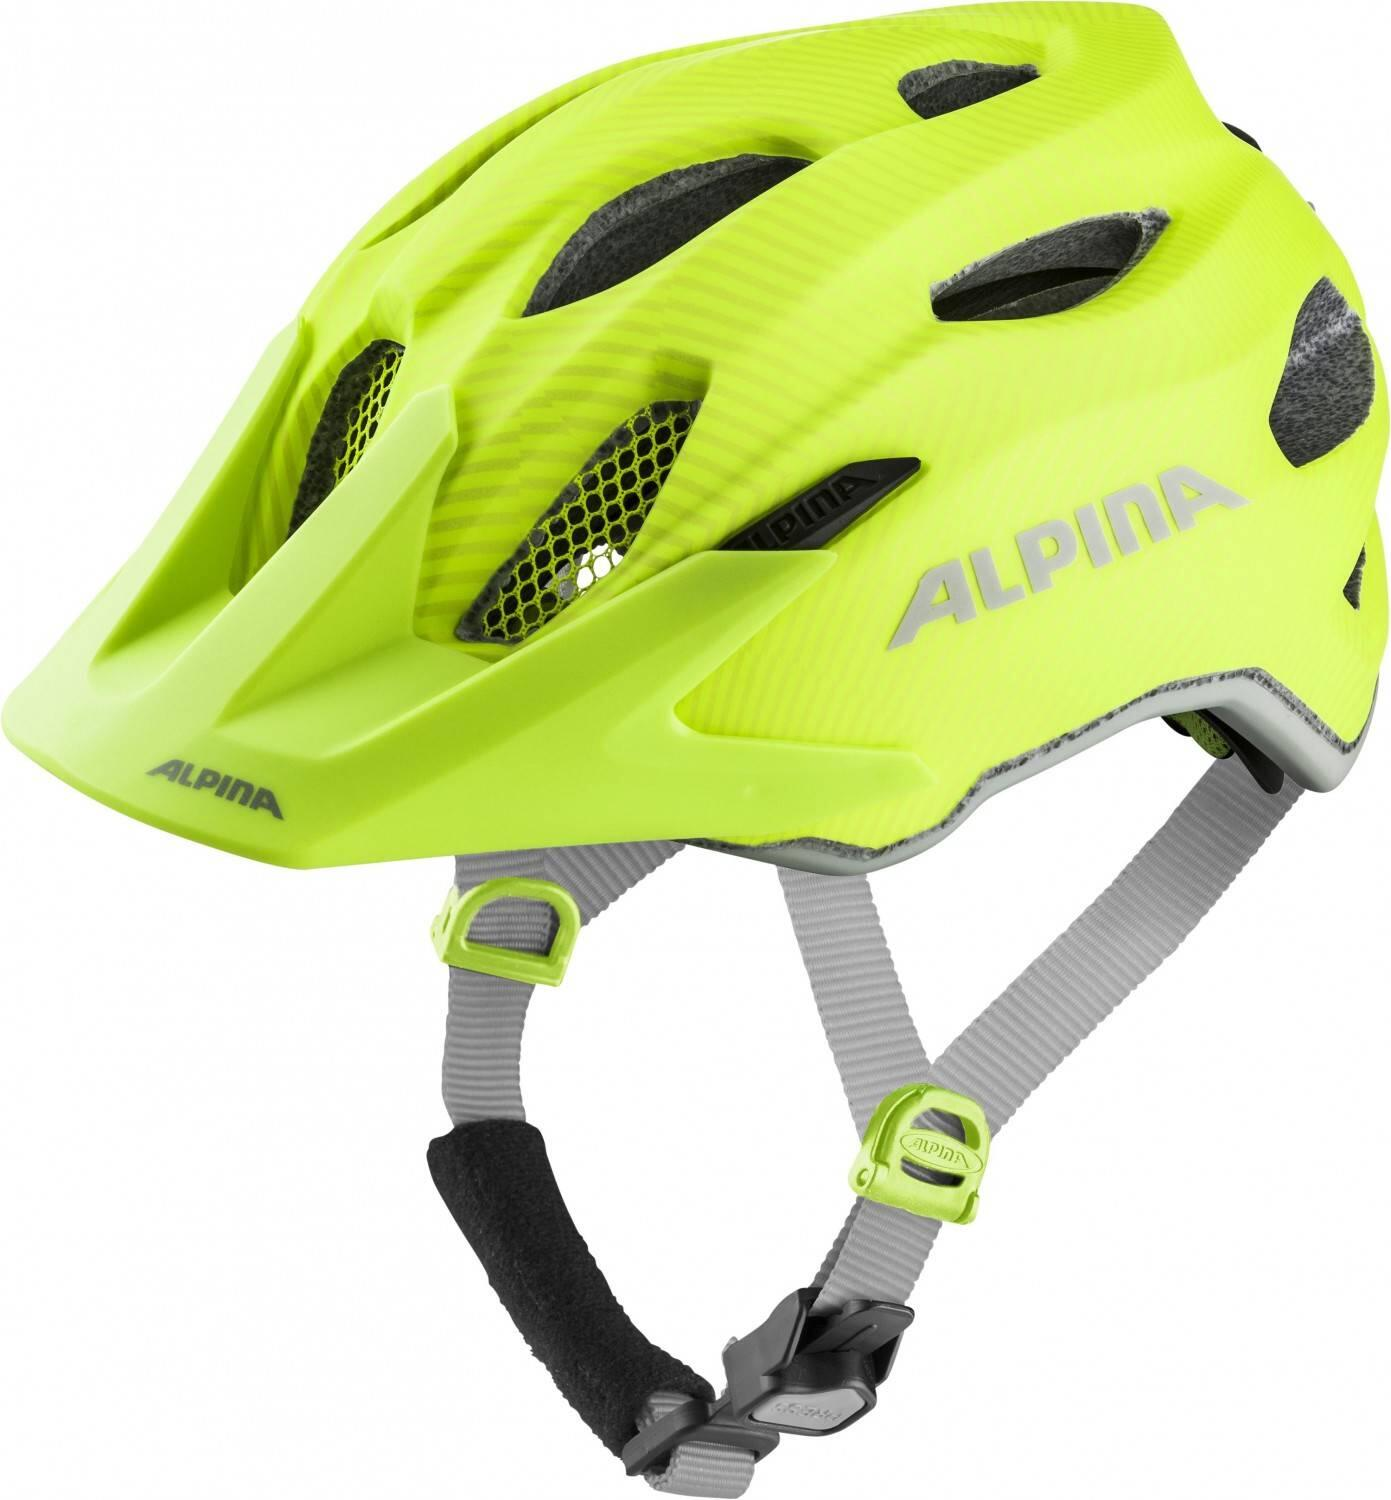 alpina-carapax-jr-flash-fahrradhelm-gr-ouml-szlig-e-51-56-cm-40-be-visible-